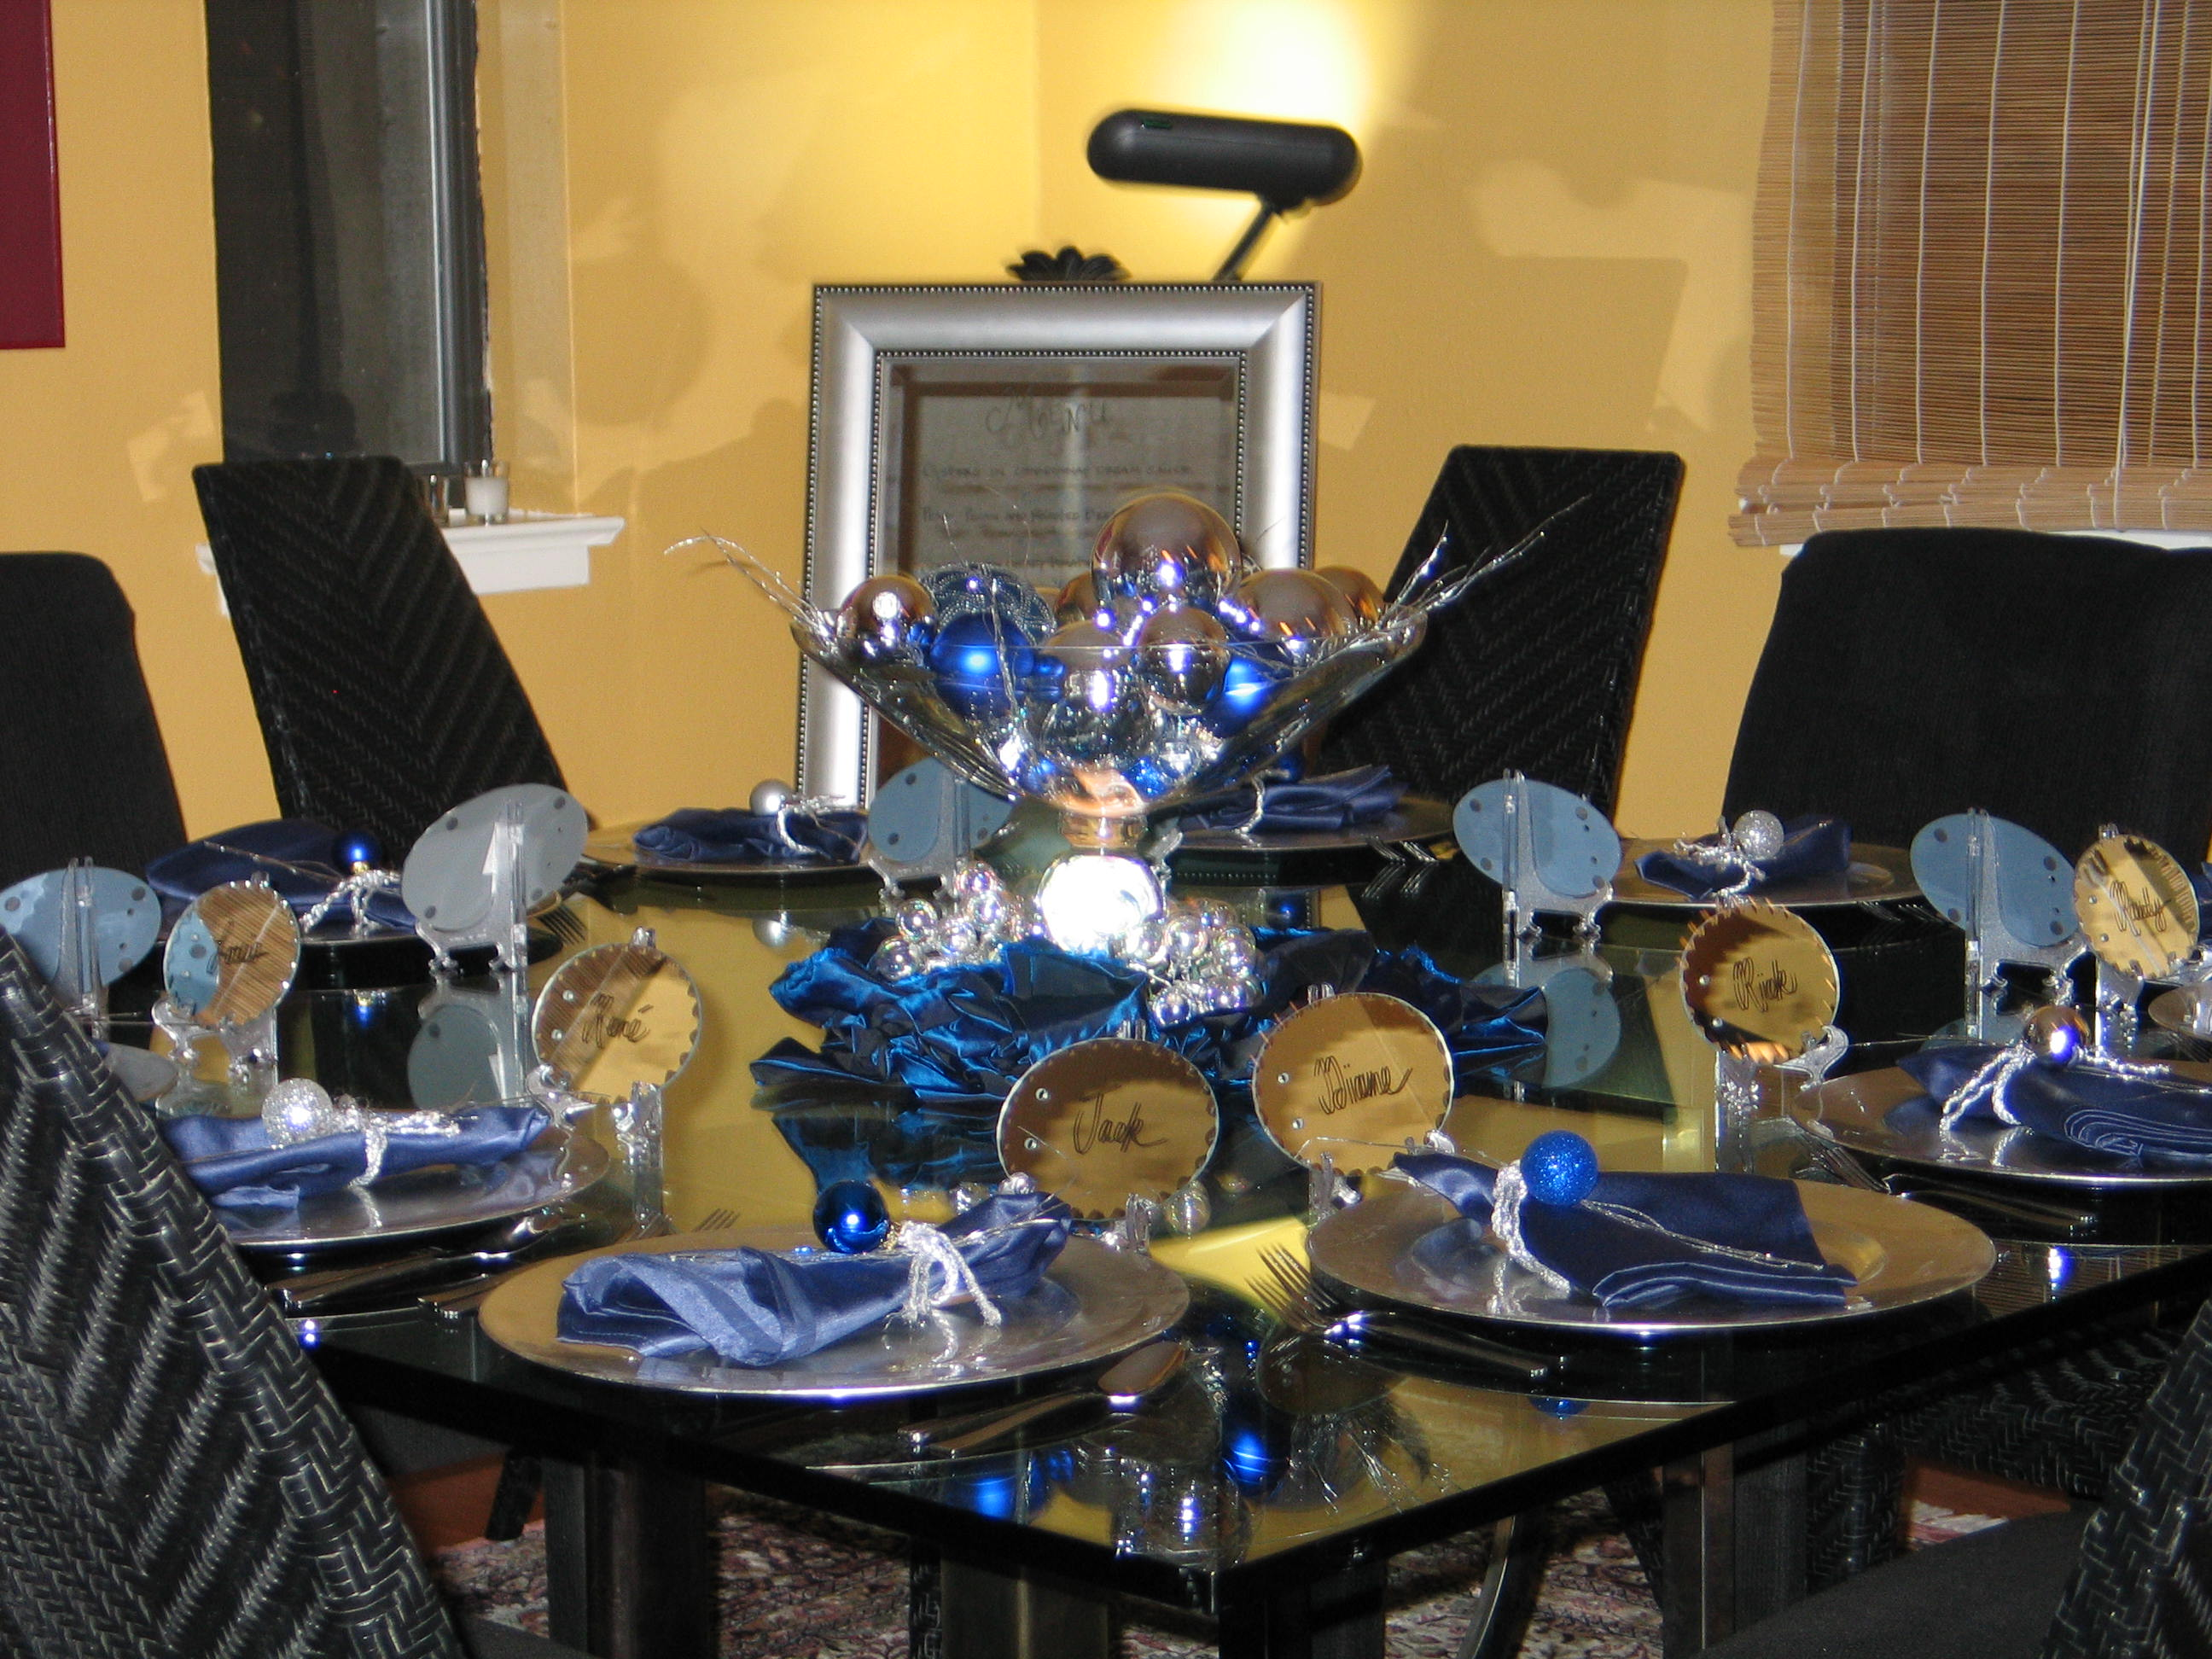 New Year's Eve Party Decor by Pro Organizer